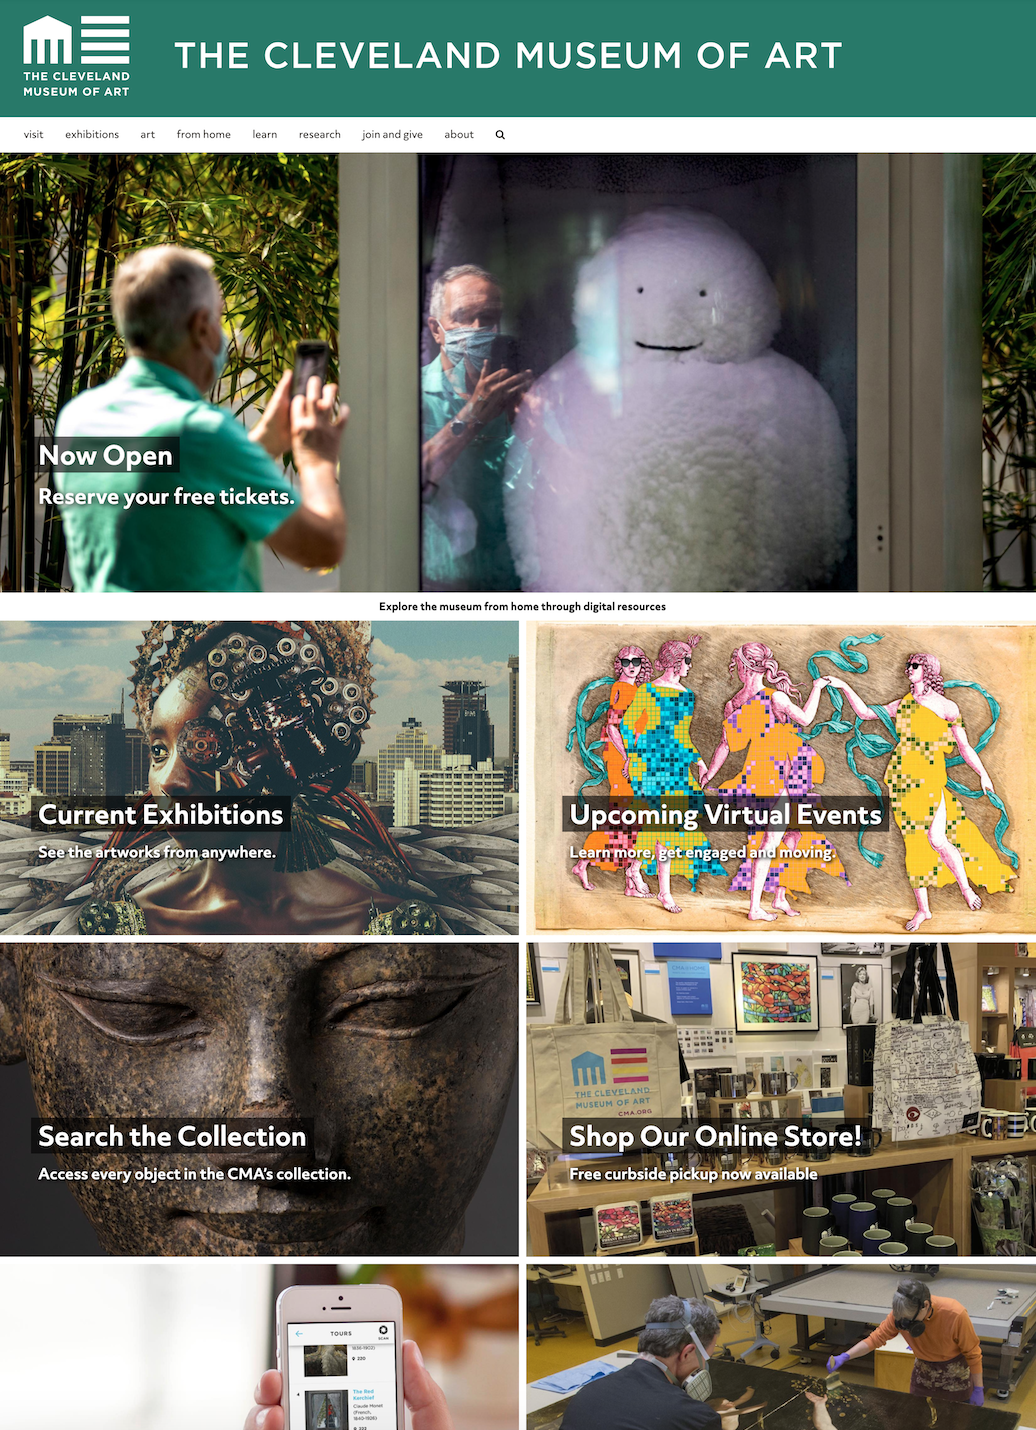 screen capture of a museum webpage